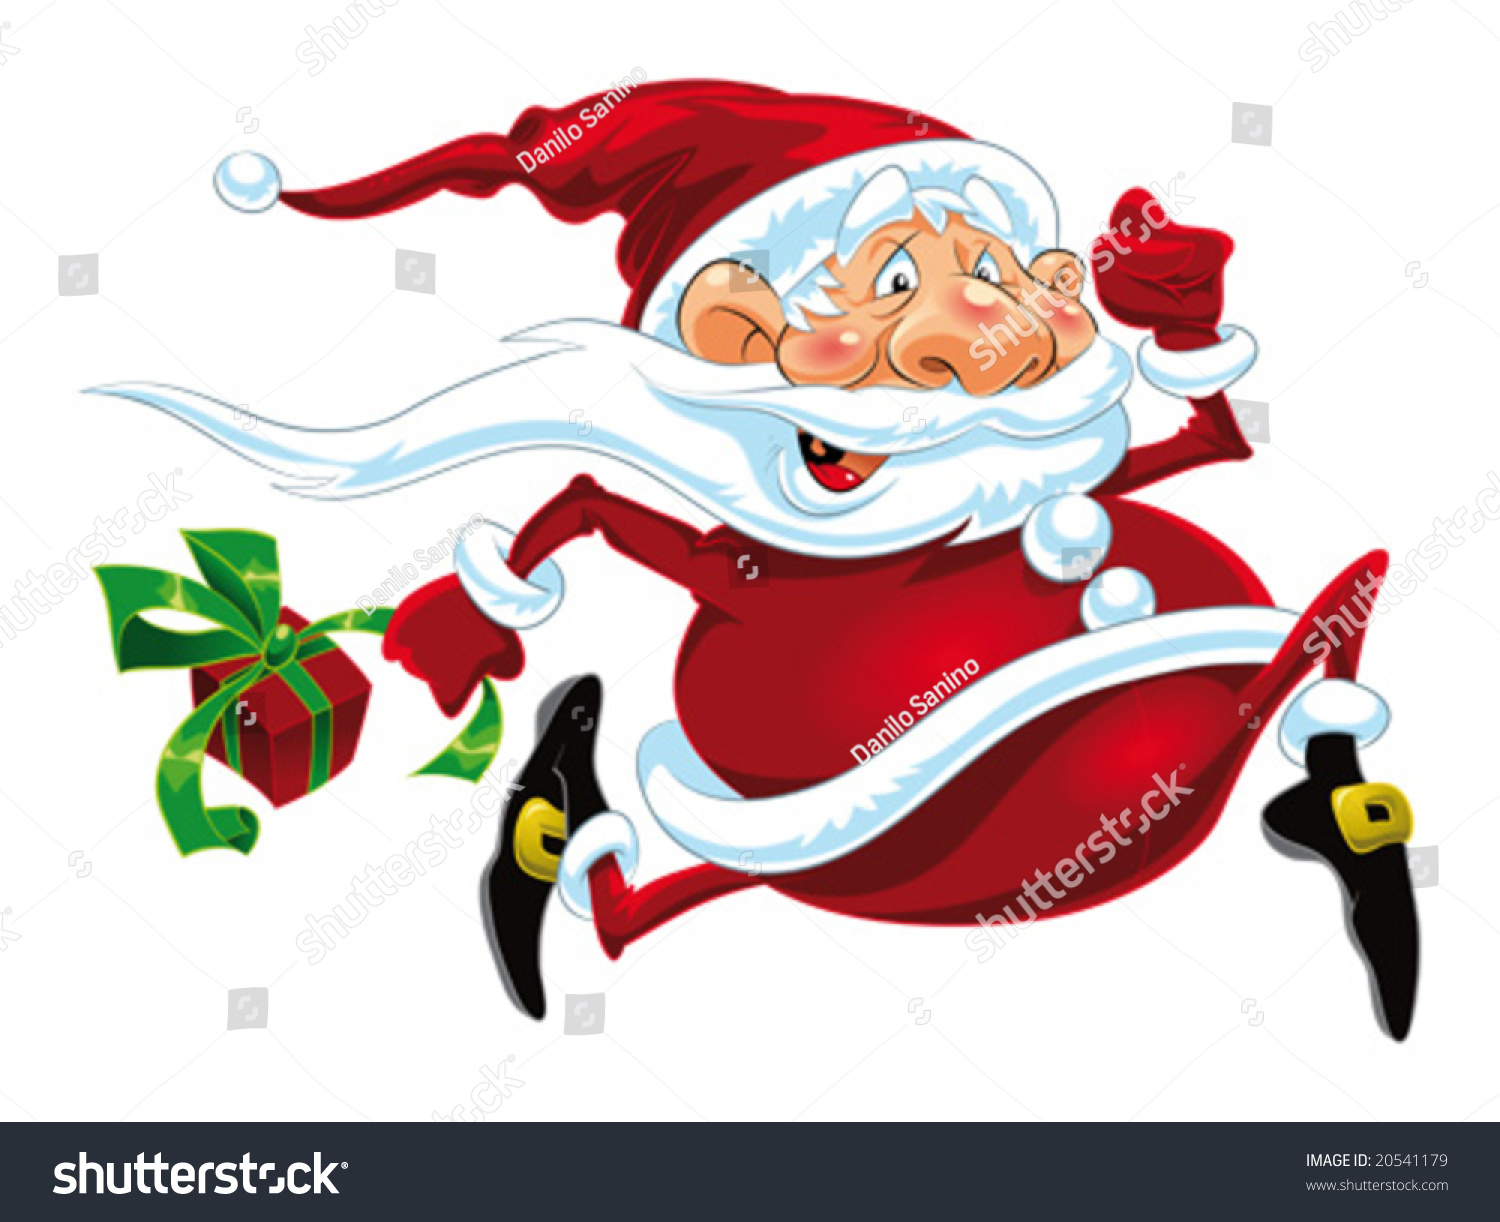 100 funny santa clause pictures santa claus face pictures free